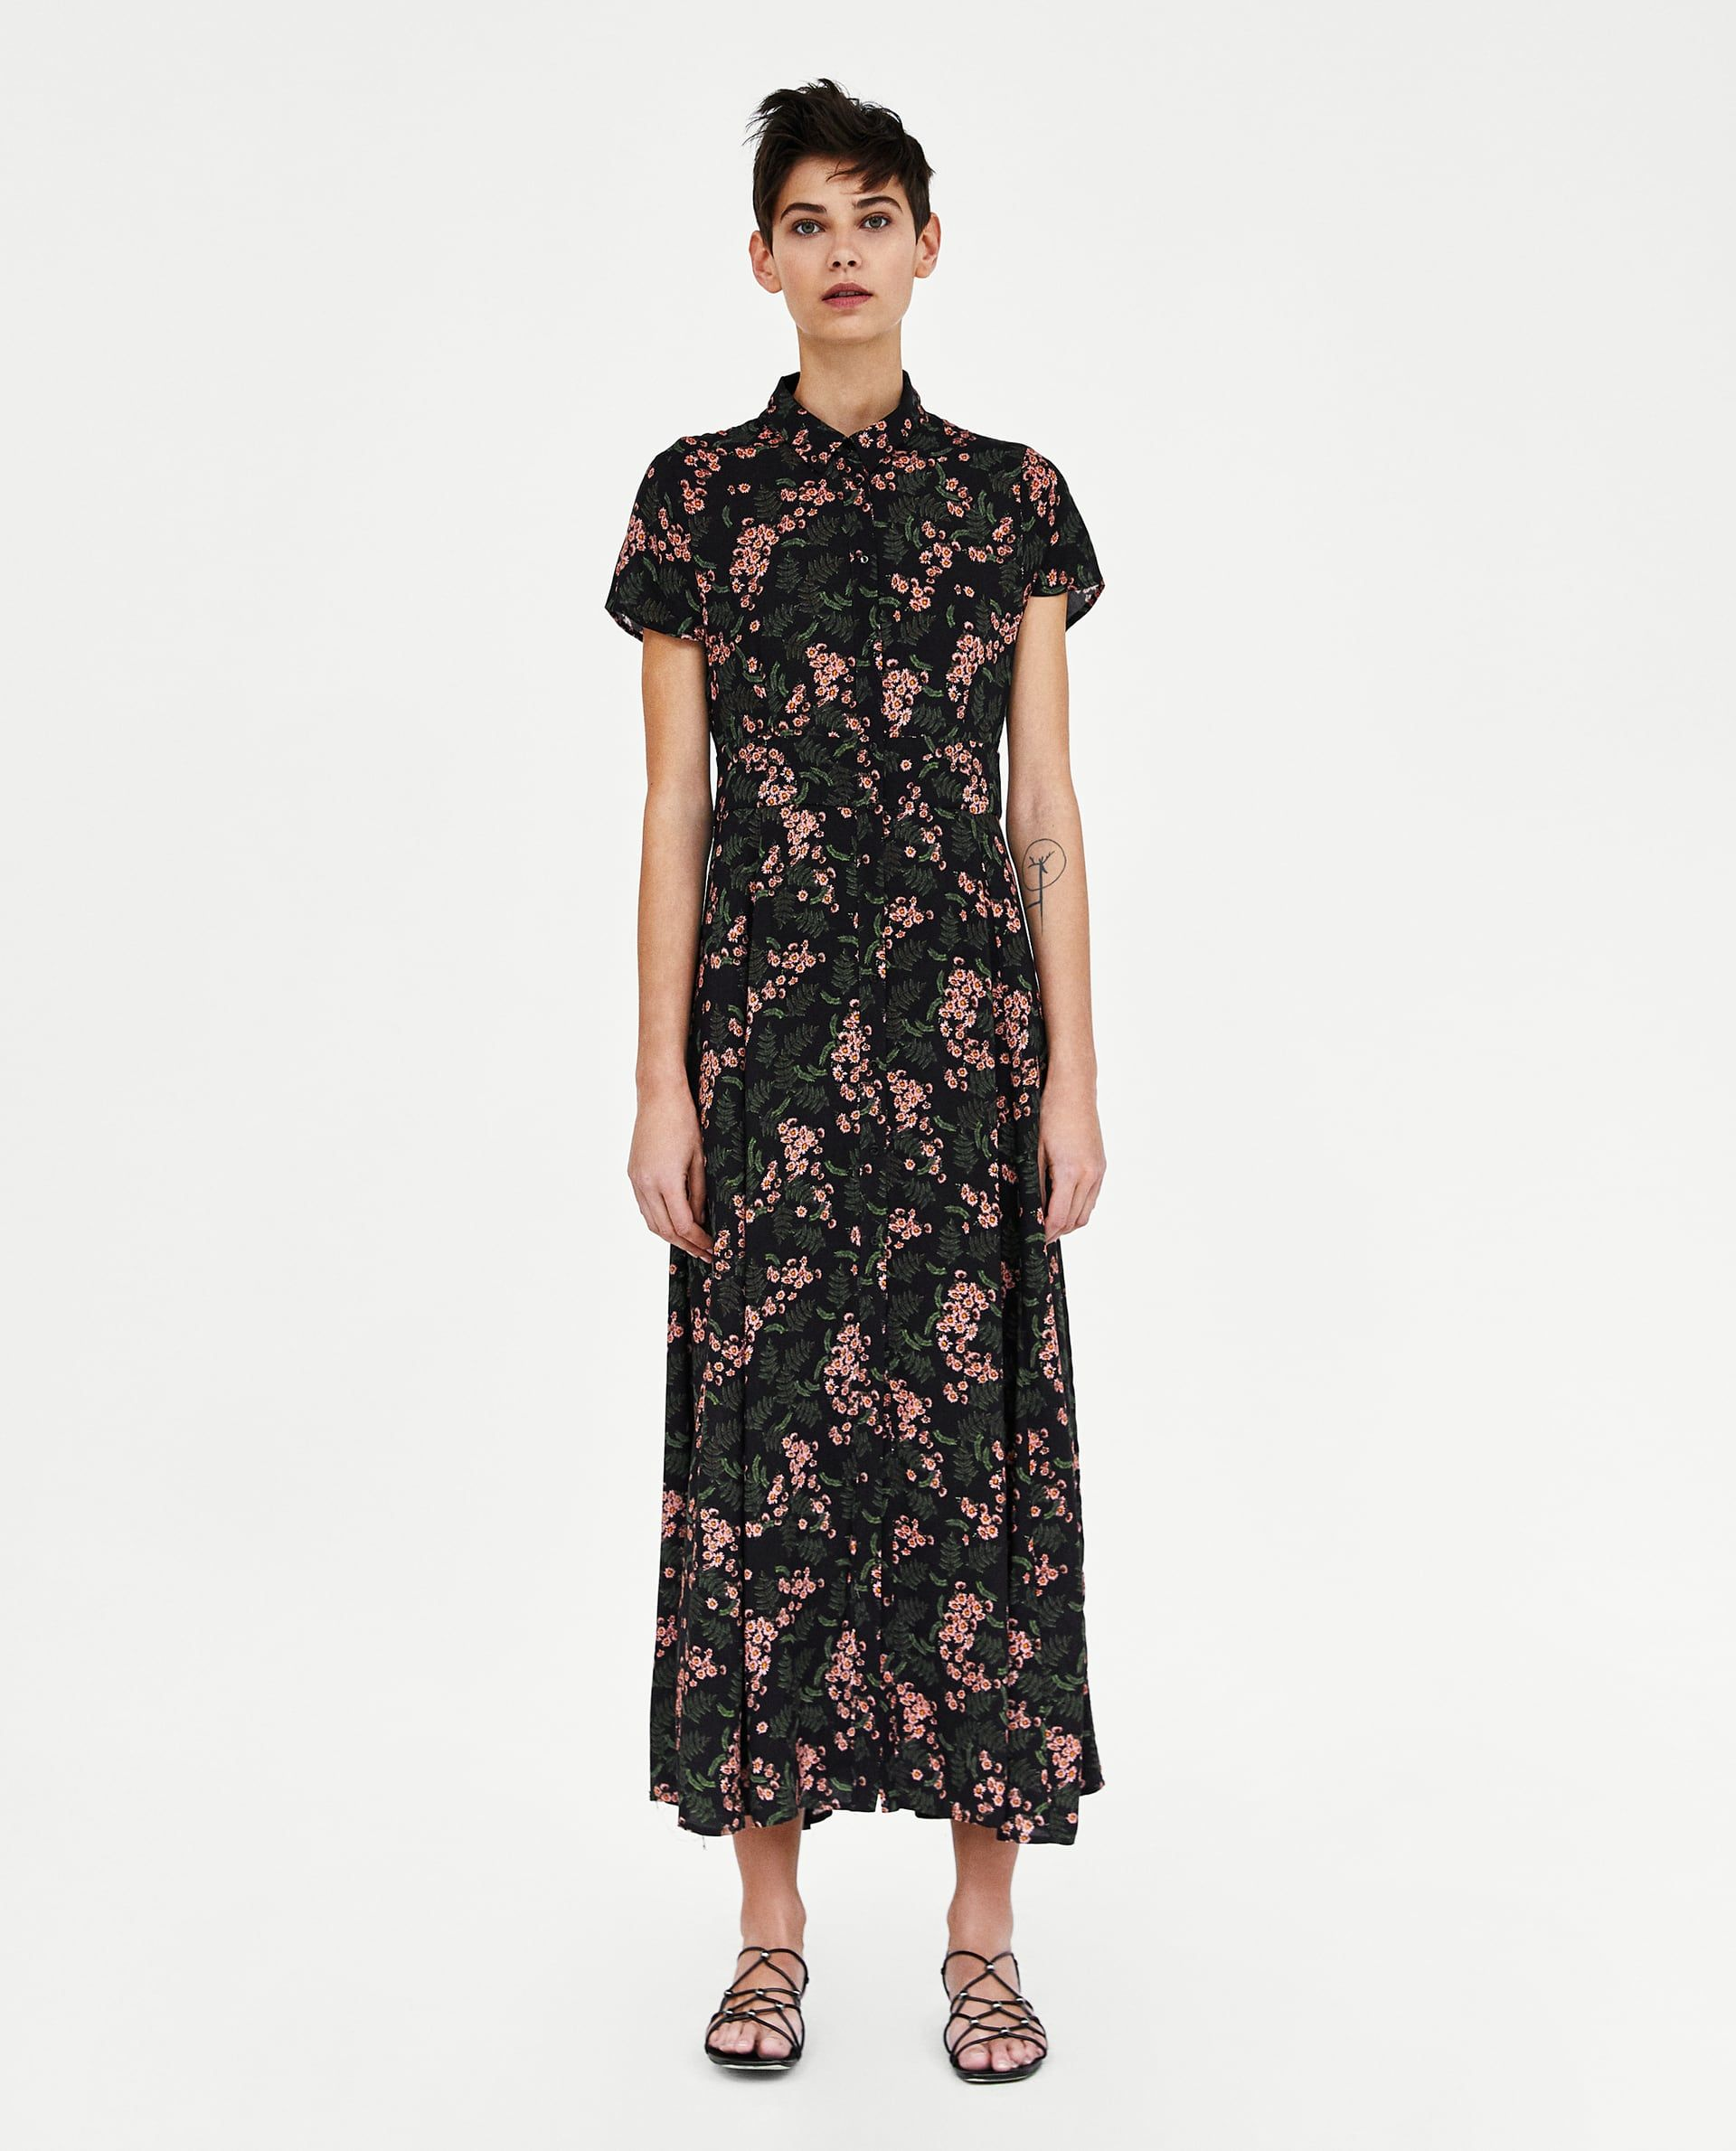 ZARA - WOMAN - LONG FLORAL PRINT DRESS  Lange kleider, Hübsche